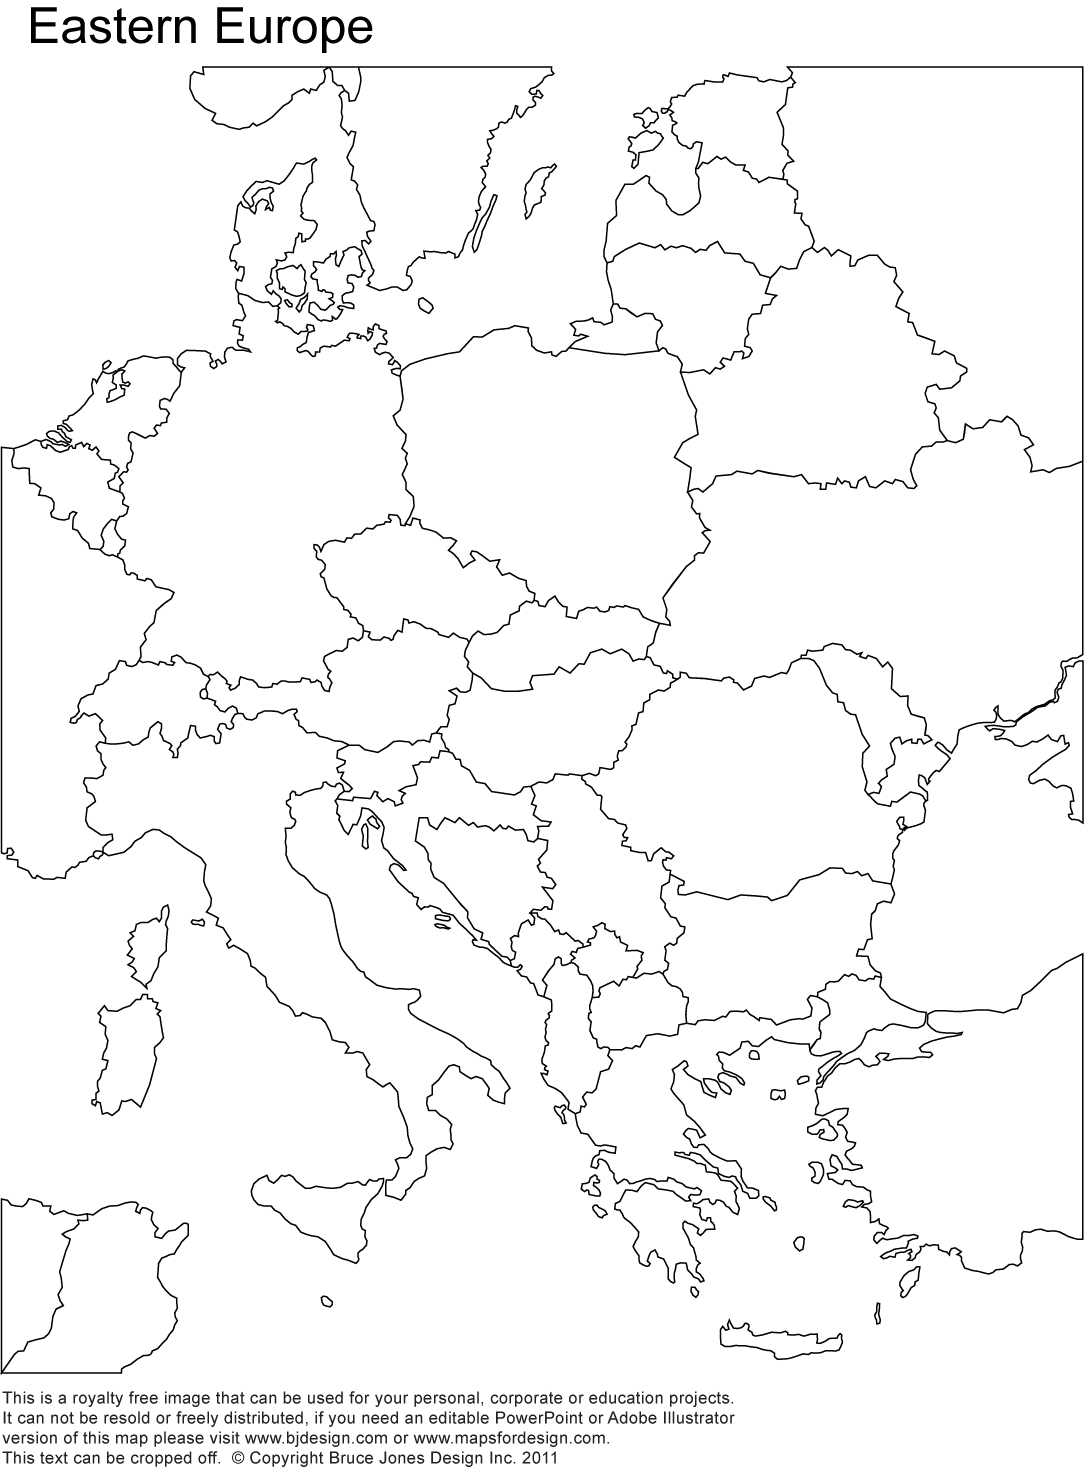 1084x1467 Eastern Europe Printable Blank Map Royalty Free Country Borders